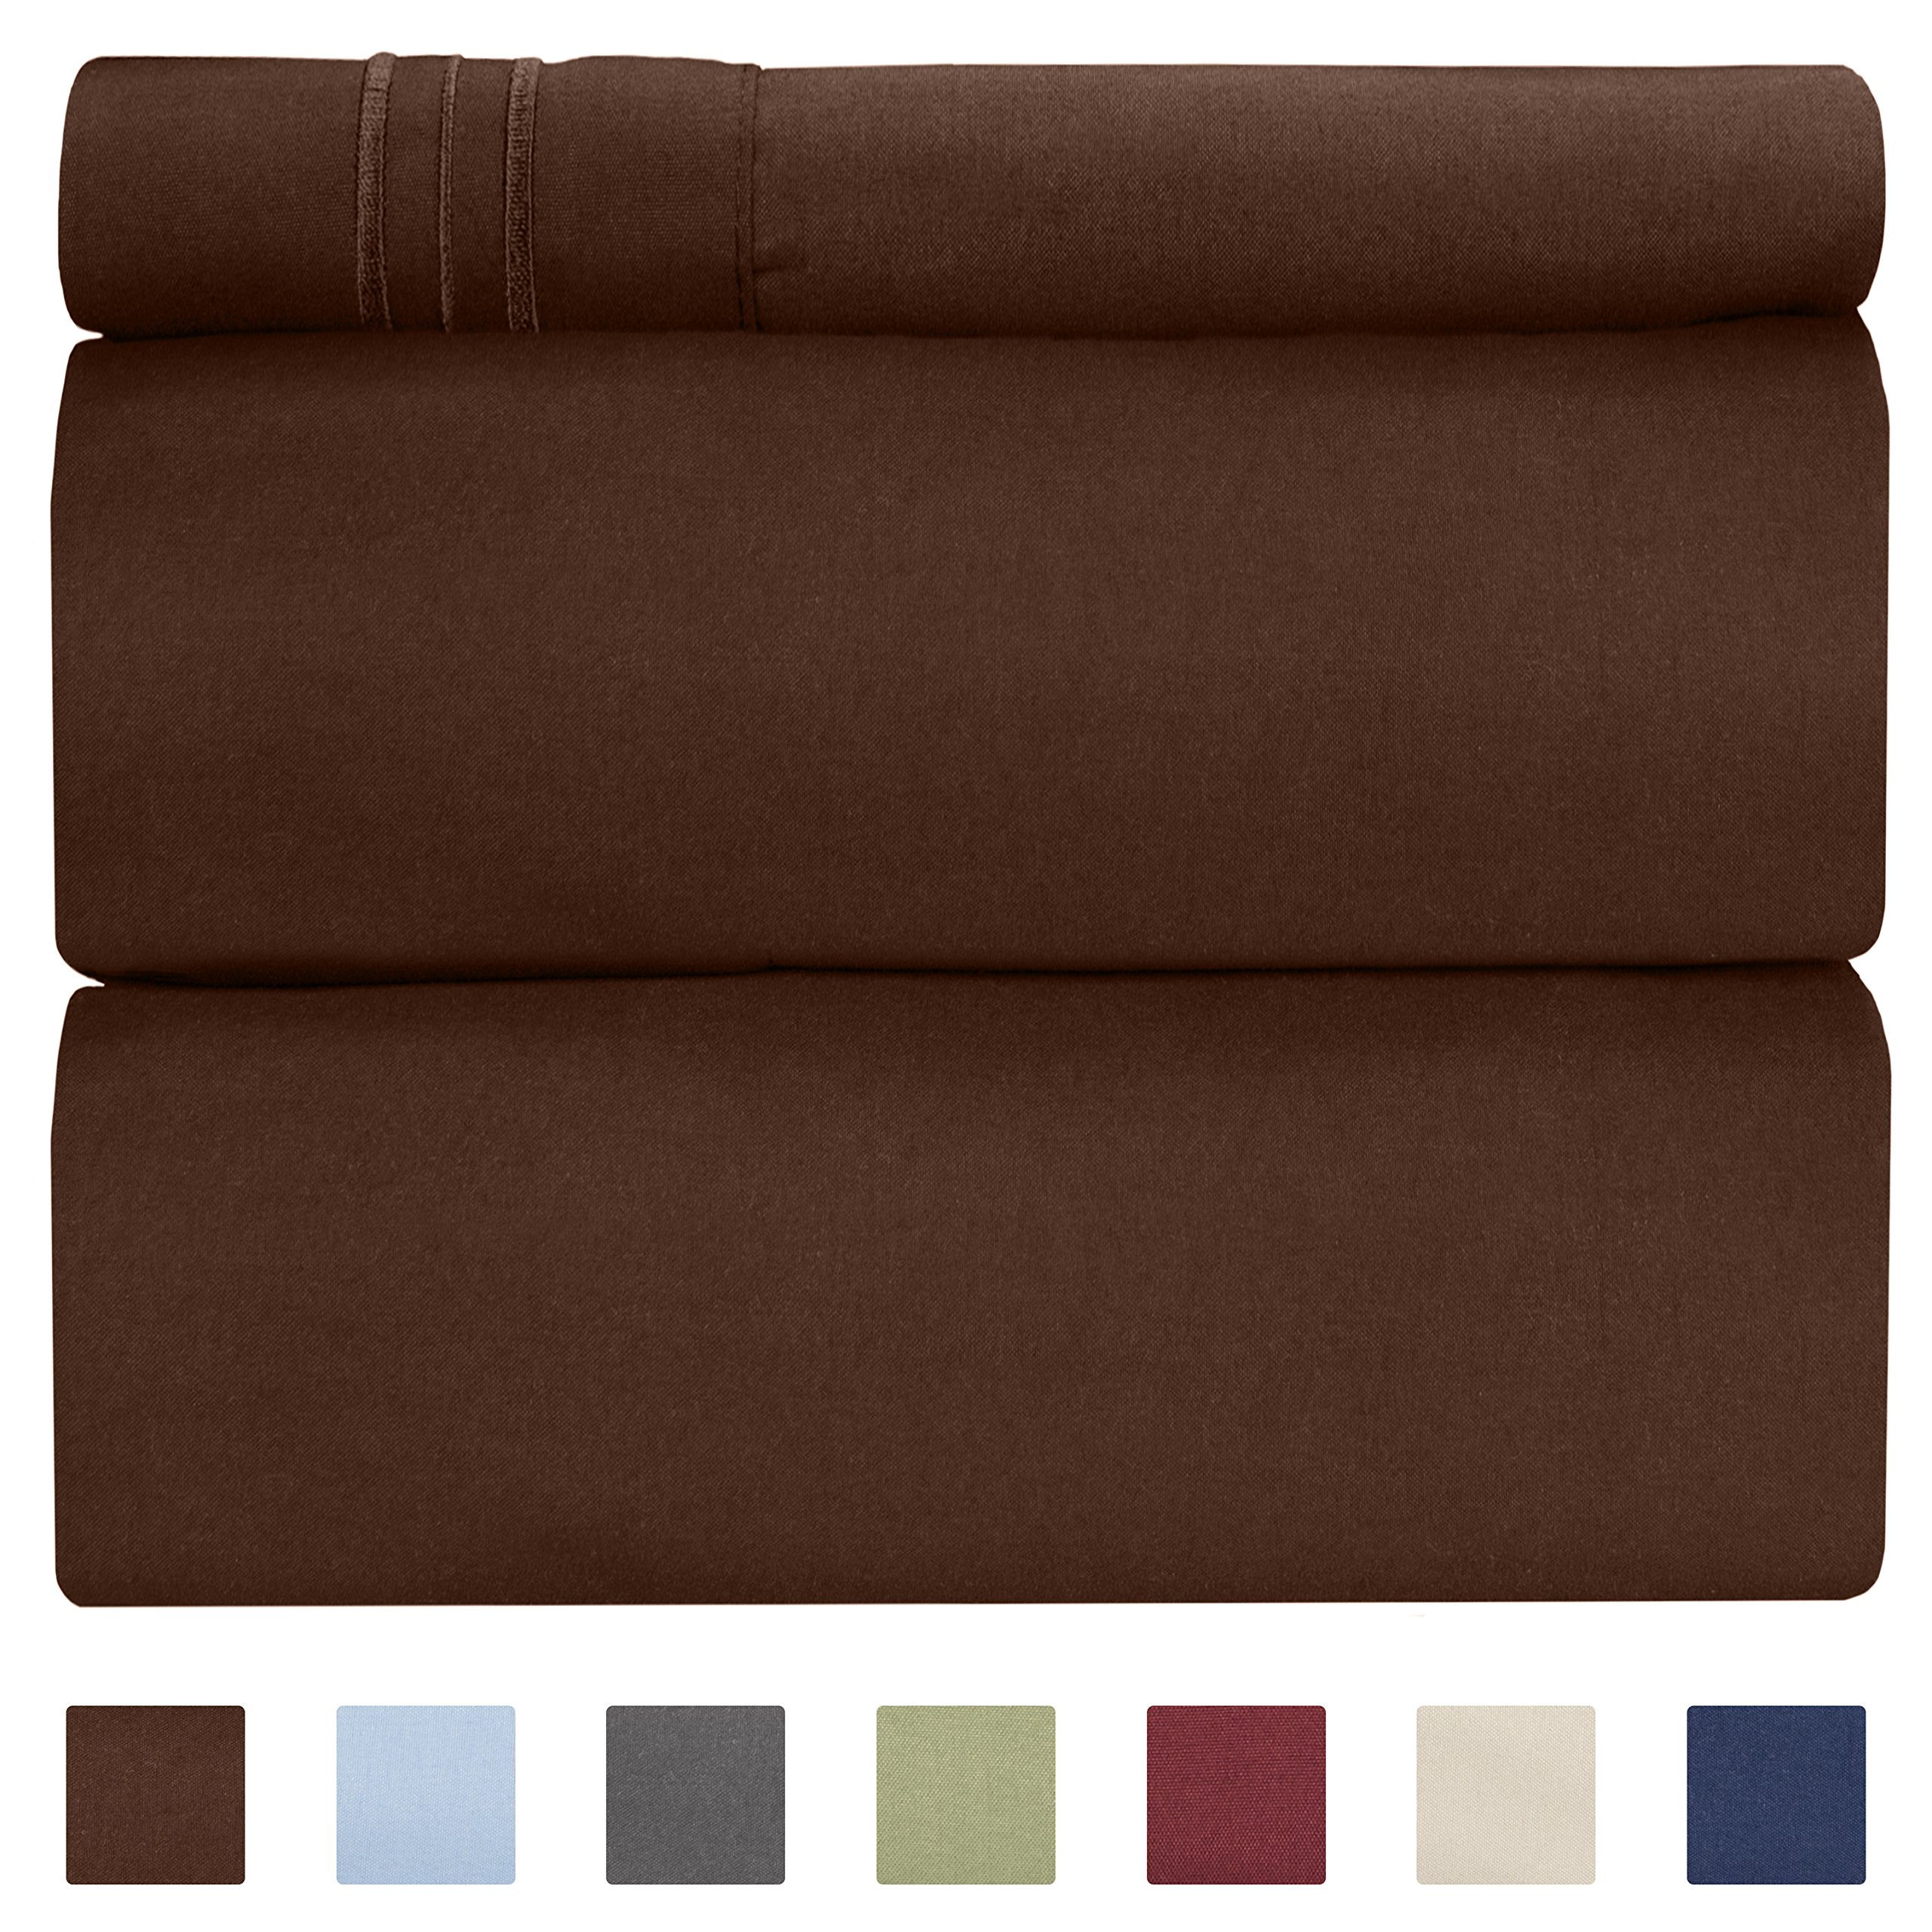 Twin XL Sheet Set - 3 Piece - Fits College Dorm Rooms - Hotel Luxury Bed Sheets - Extra Soft - Deep Pockets - Easy Fit - Breathable & Cooling - Brown Chocolate Bed Sheets - Twins